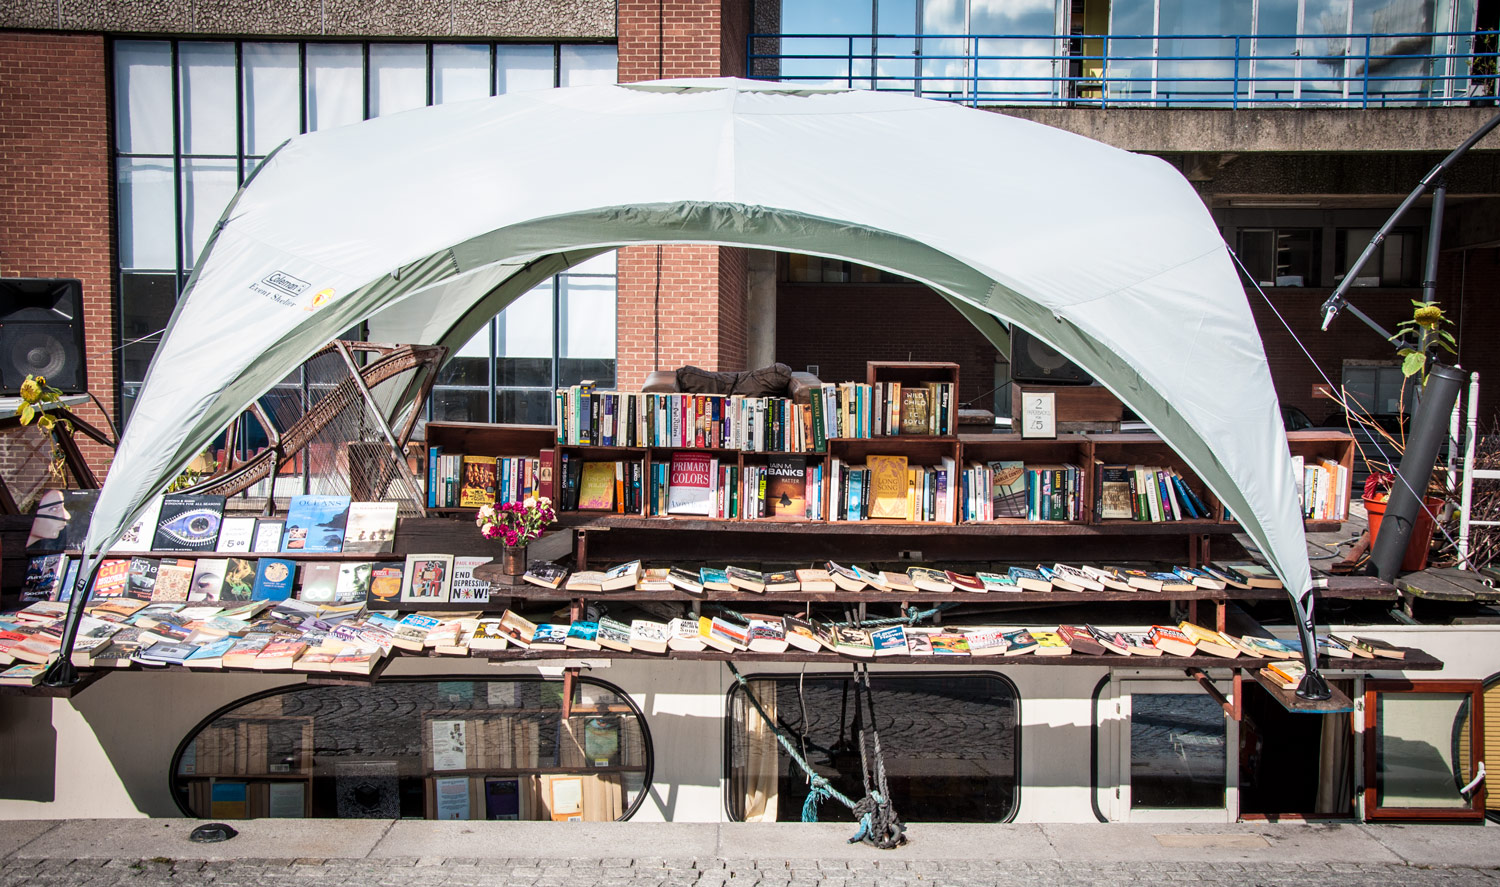 The London Bookbarge near Paddington Basin